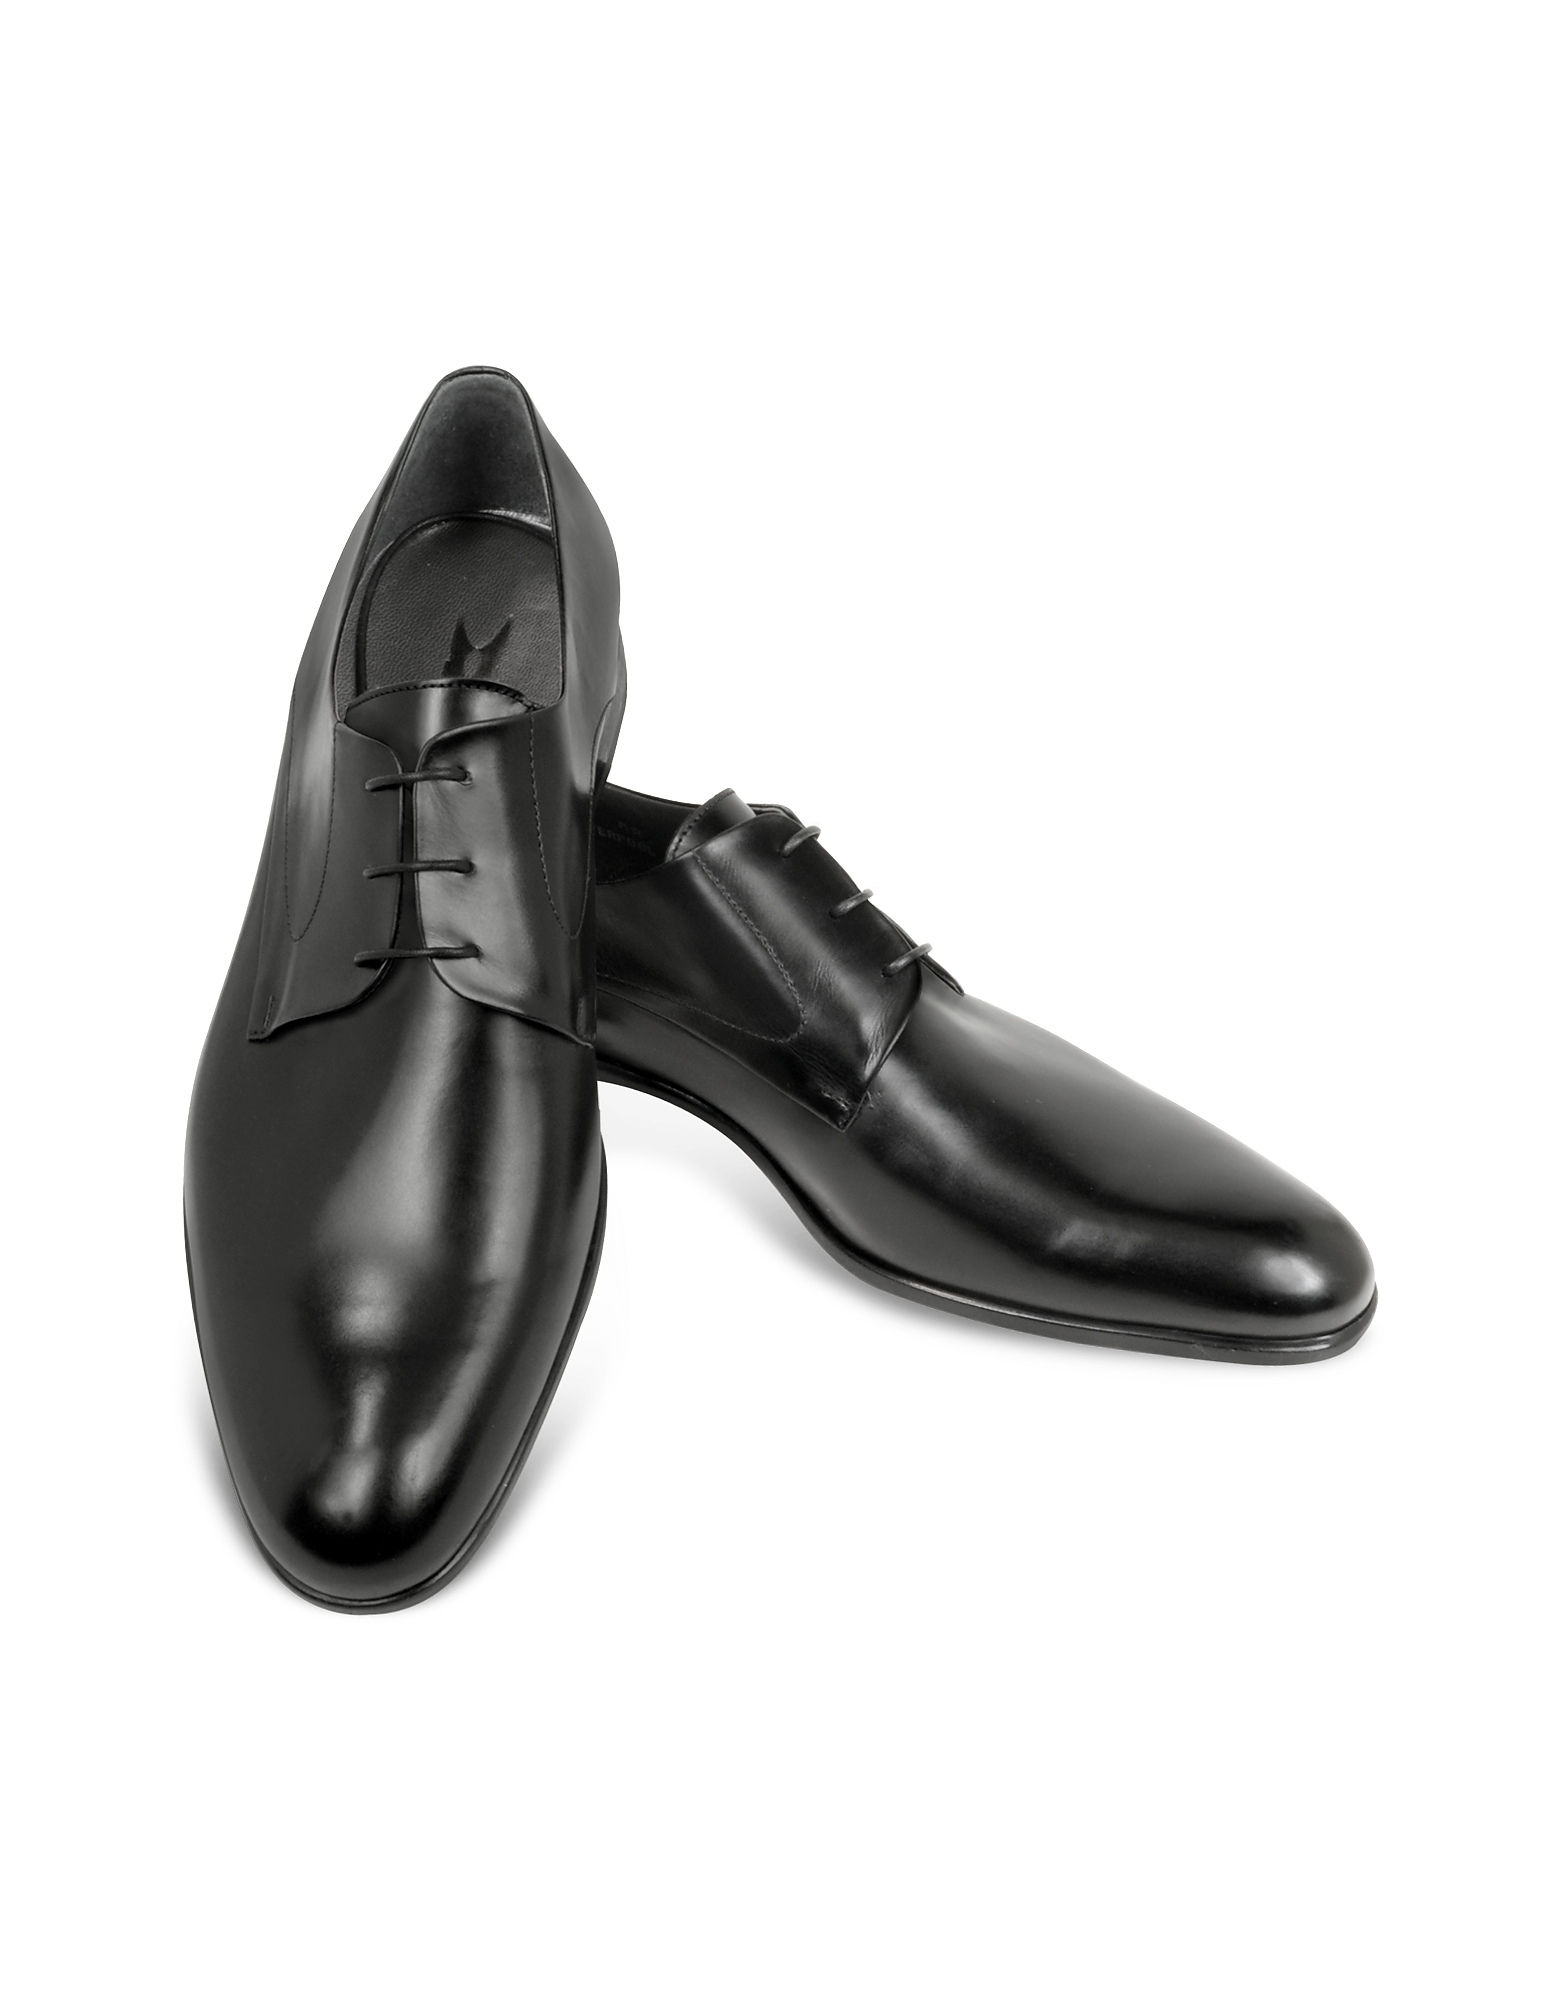 Moreschi Shoes, Liverpool Black Leather Derby Shoes